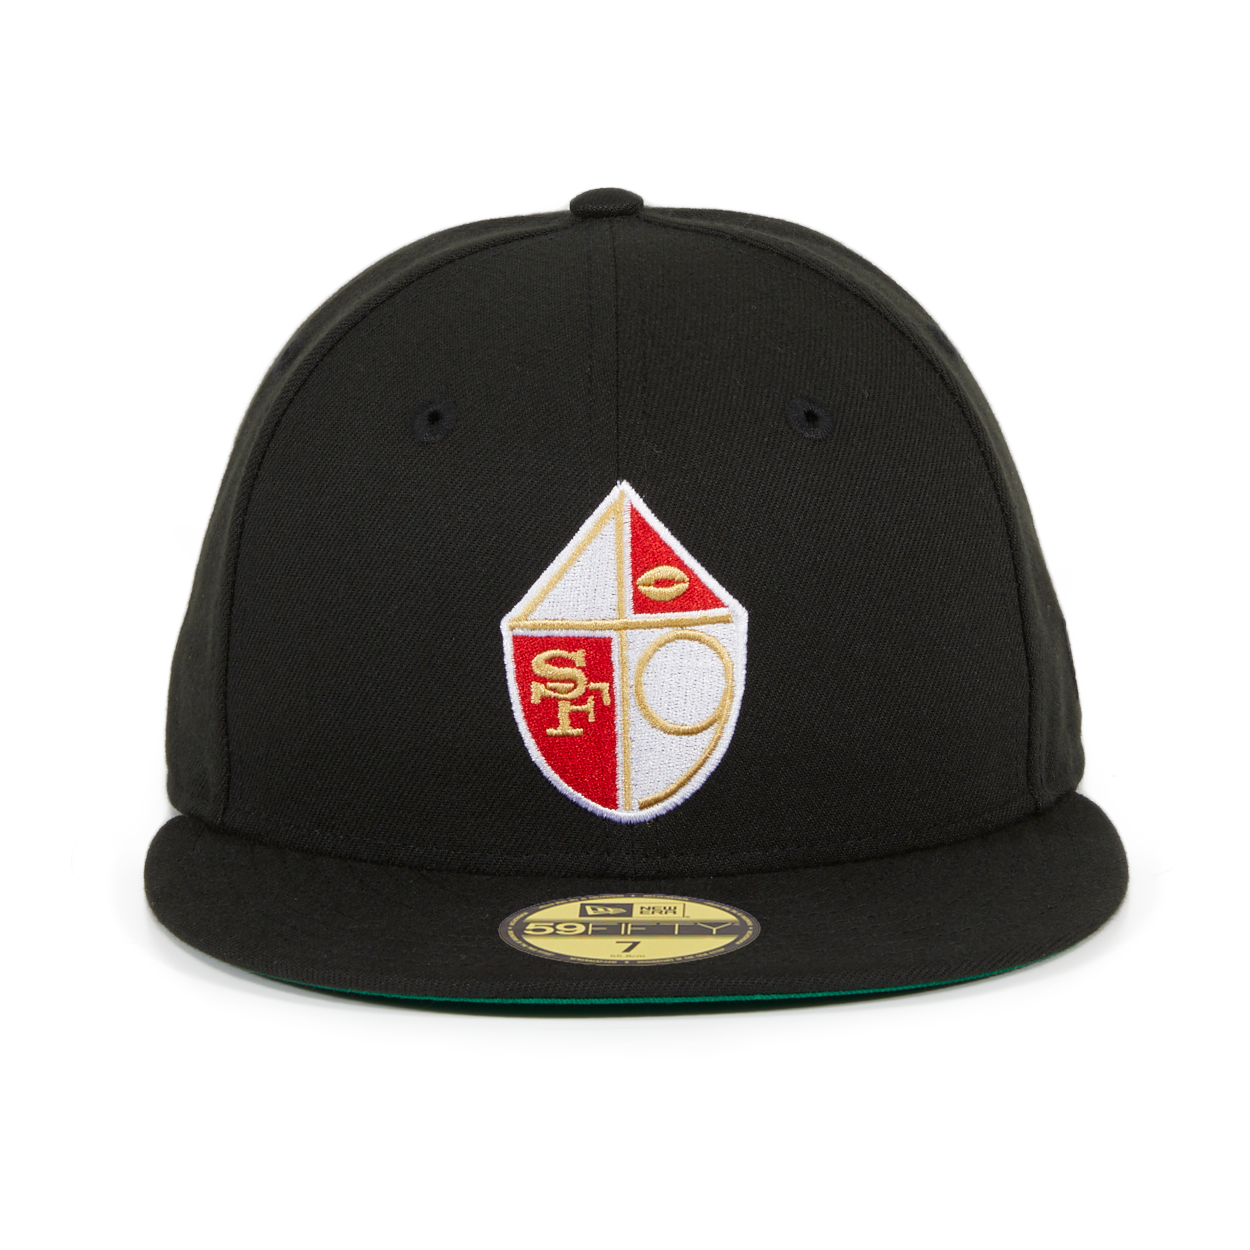 Exclusive New Era 59Fifty San Francisco 49ers Shield Hat - Black – Hat Club 8e7973717de